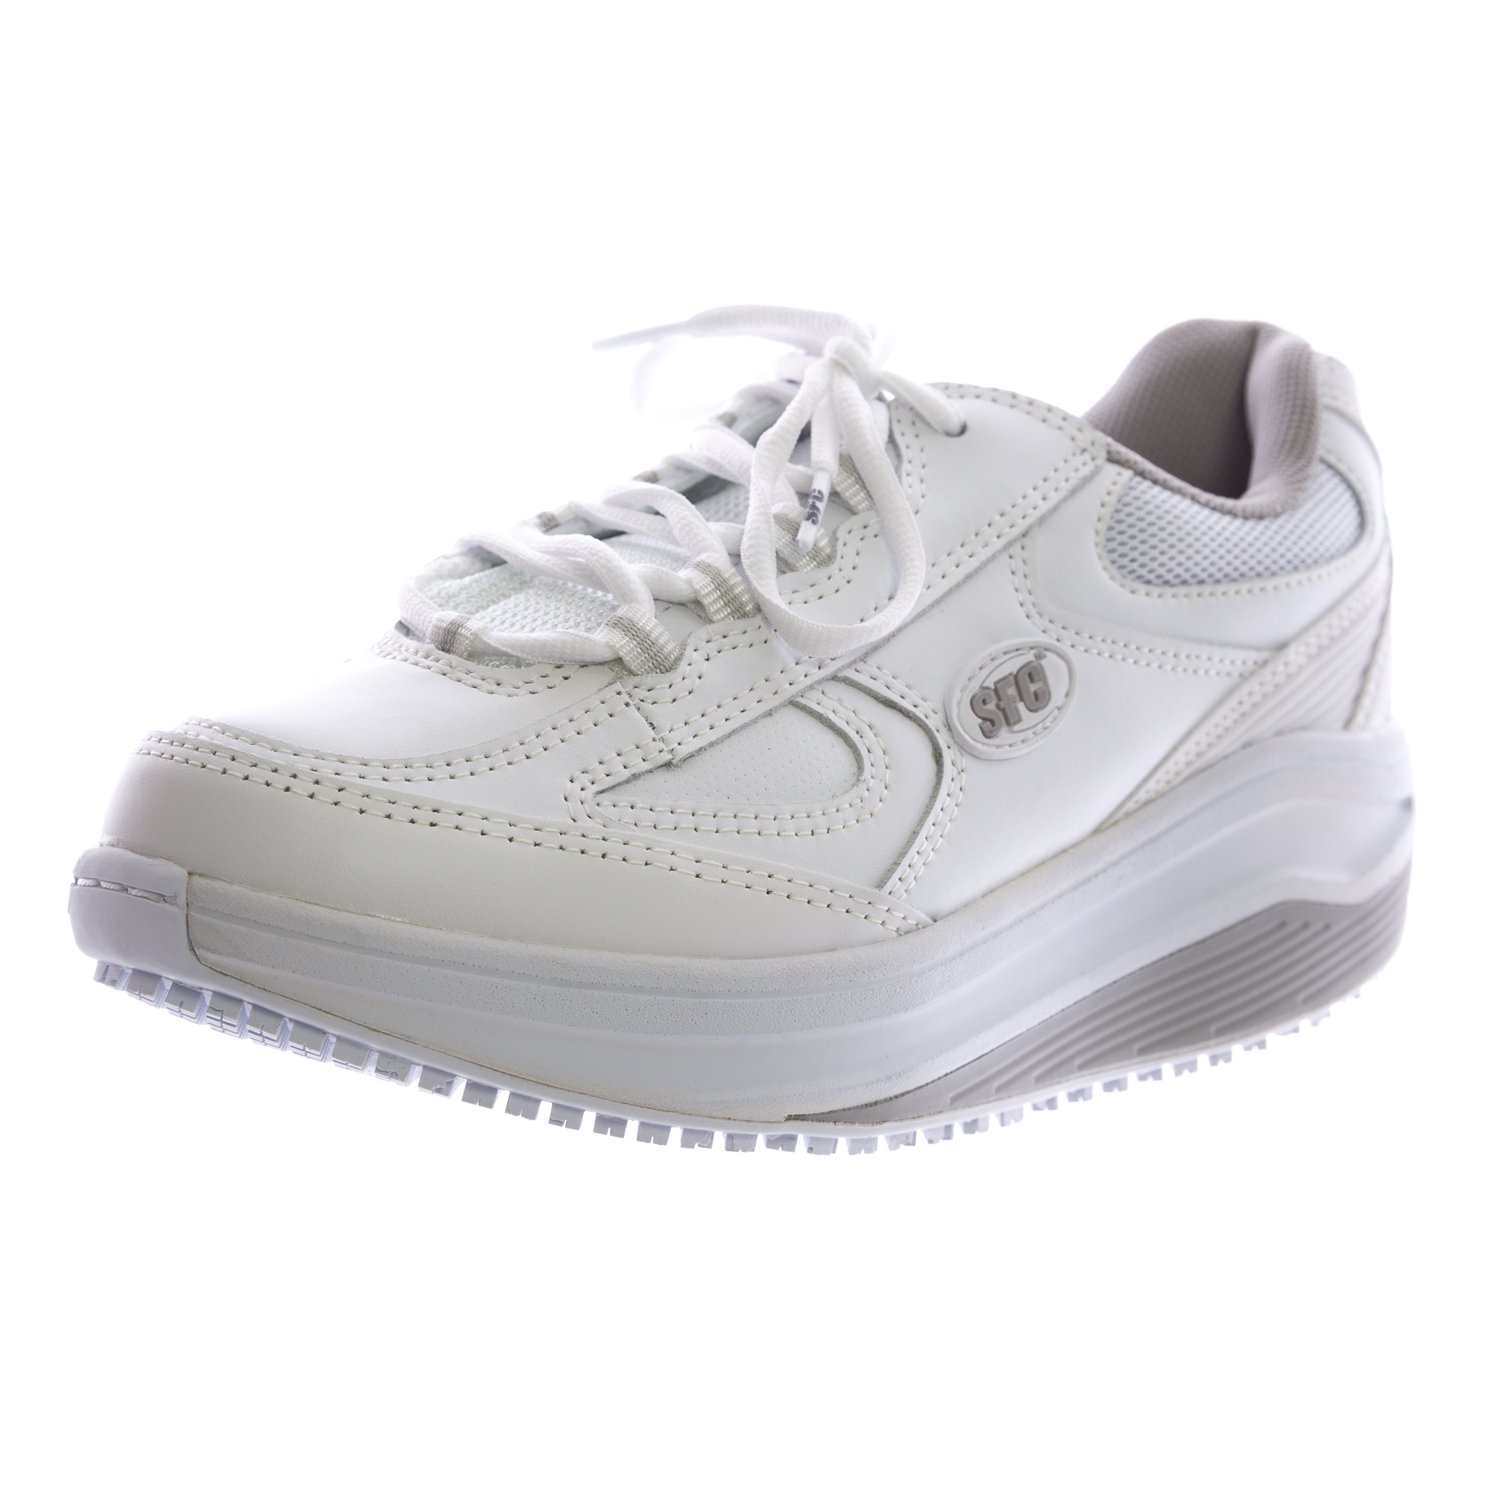 Shoes For Crews Women's Energy Leather Shoes 9142 Size 9.5 White